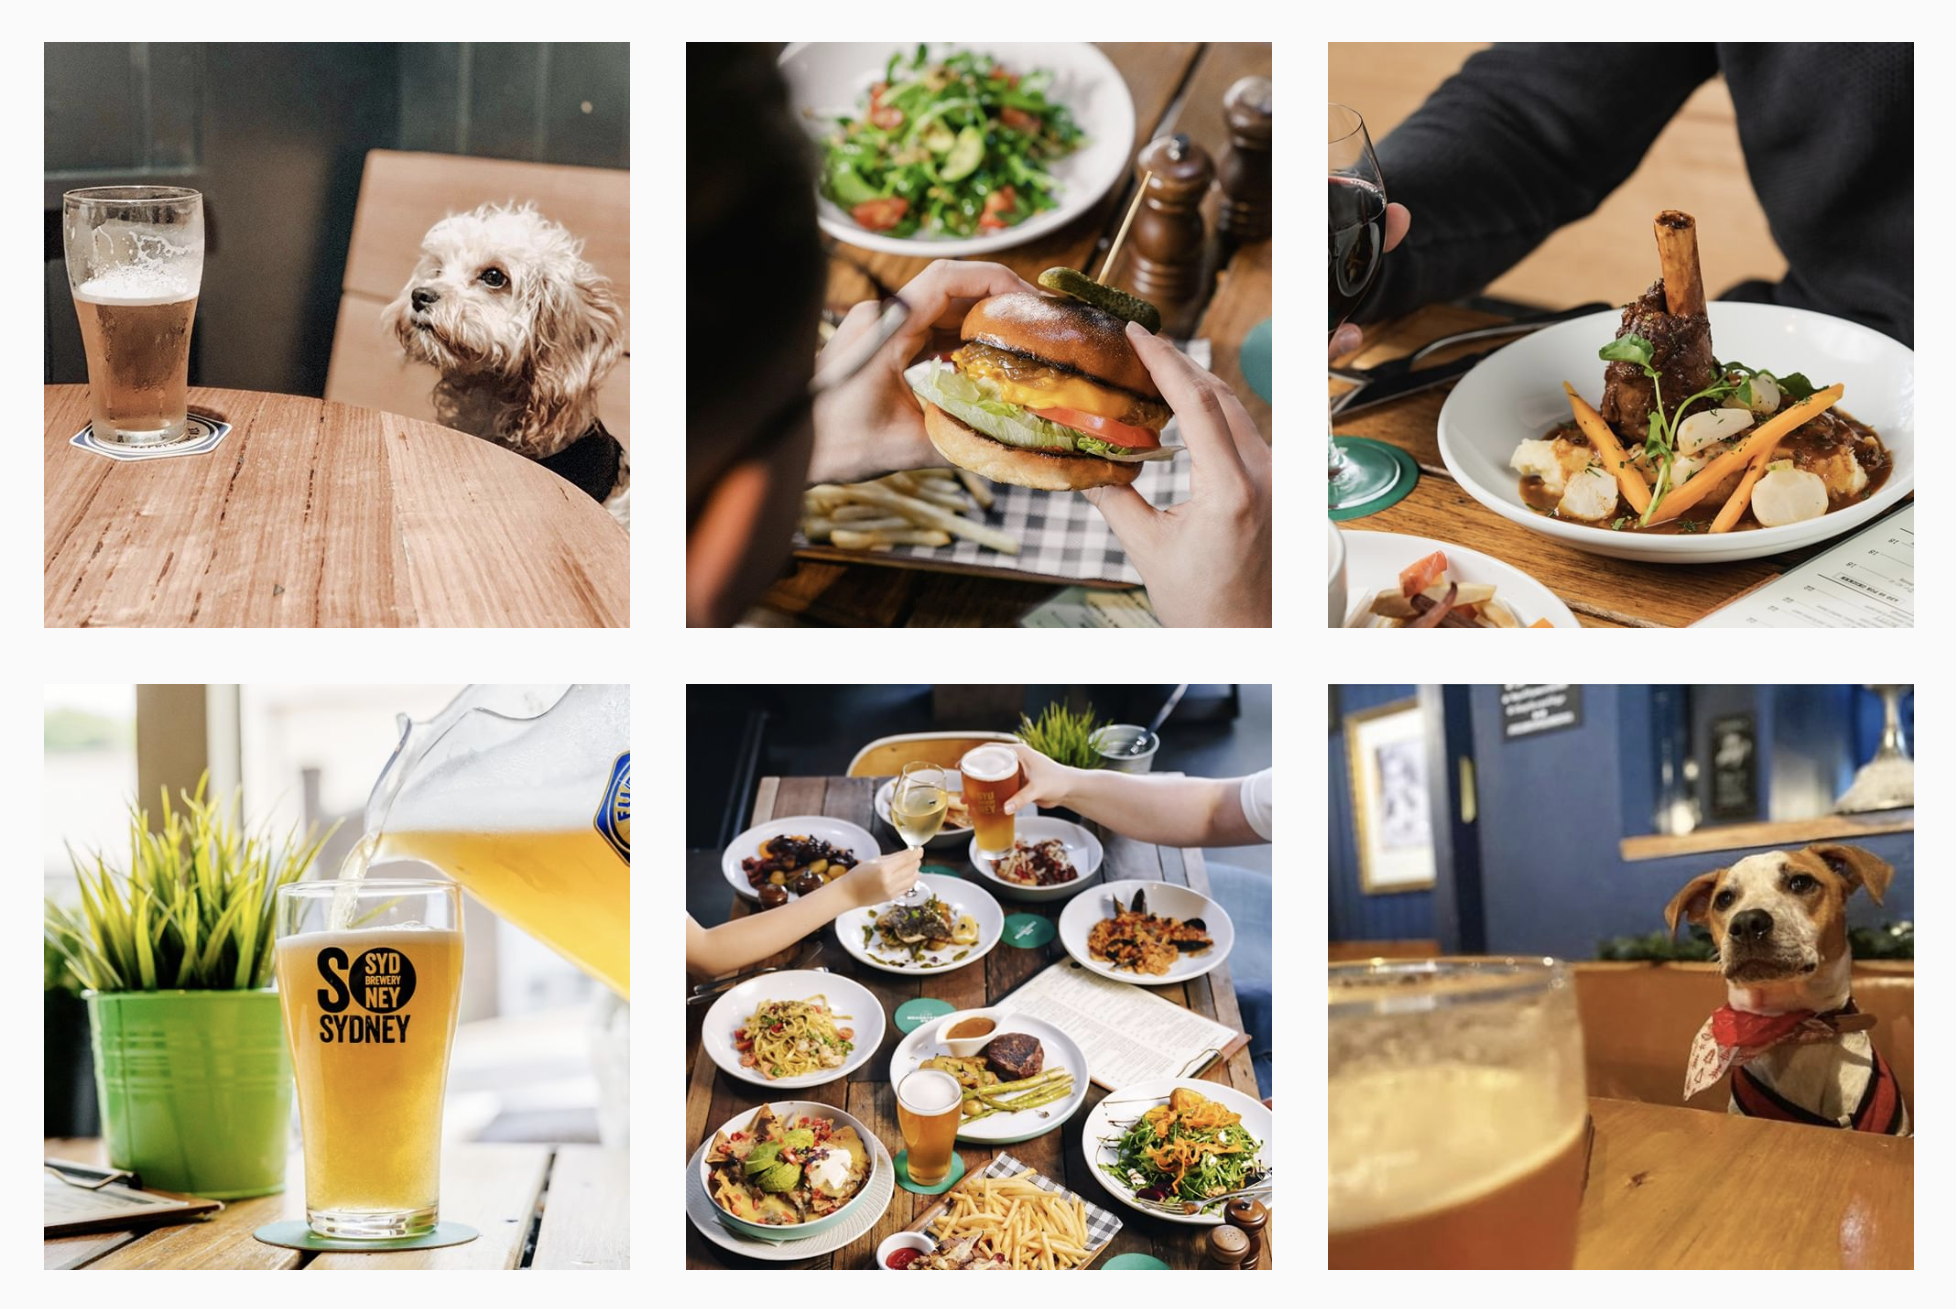 Instagram feed of The Carrington Sydney, showing photos of food, drinks and dogs in venue